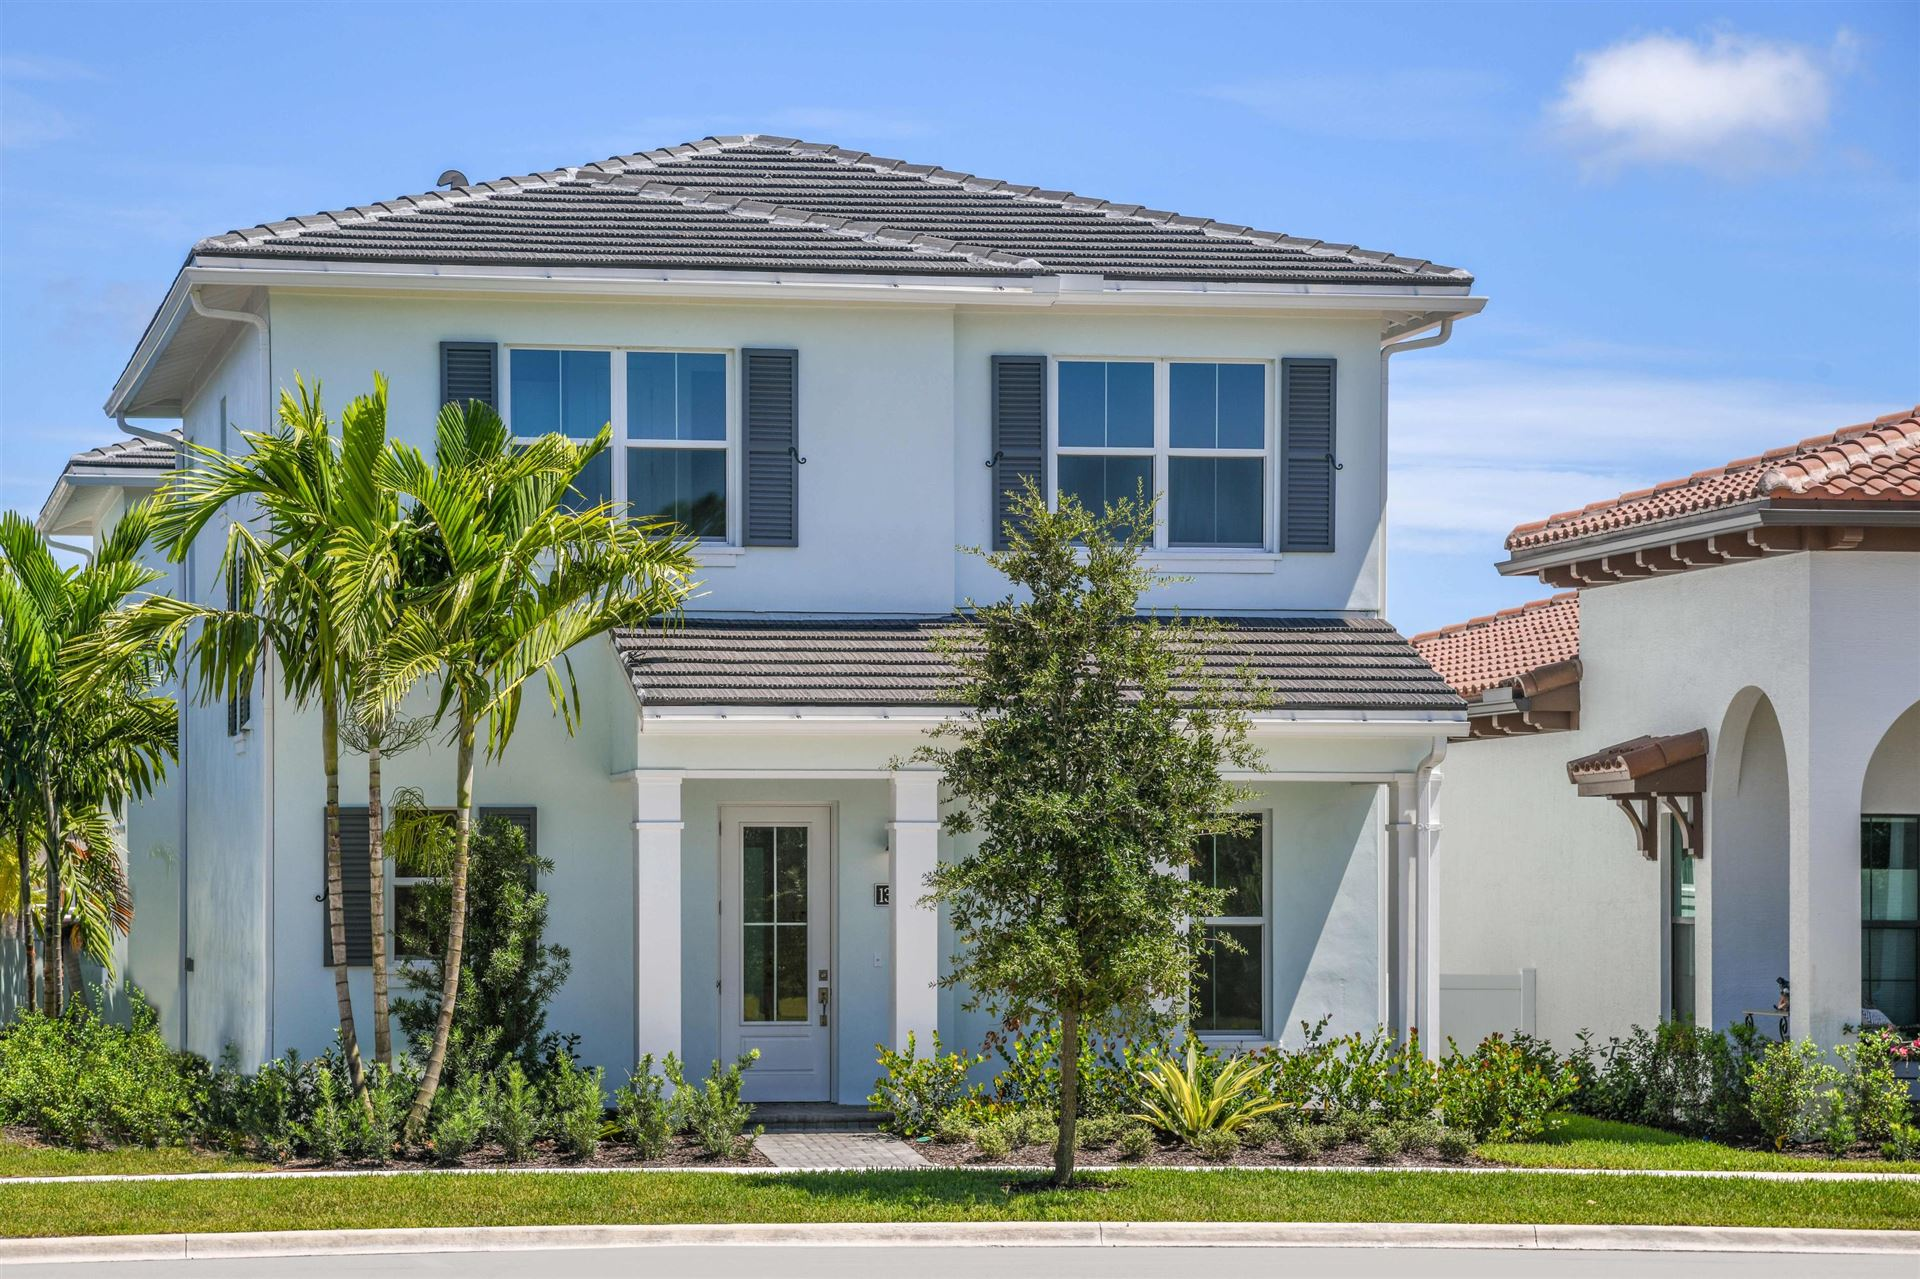 13537 Machiavelli Way, Palm Beach Gardens, FL 33418 - #: RX-10612583